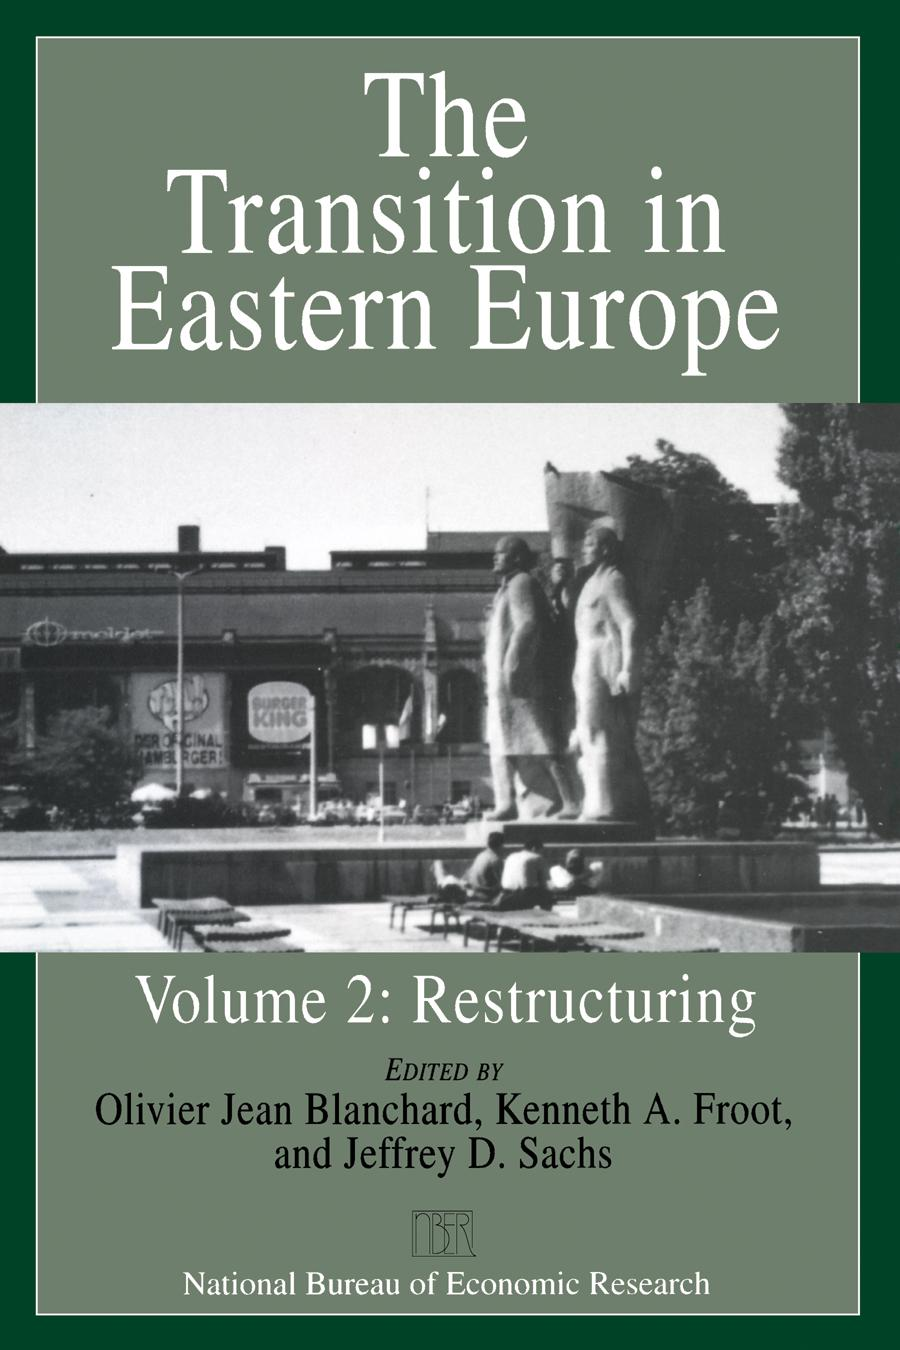 The Transition in Eastern Europe, Volume 2: Restructuring free download